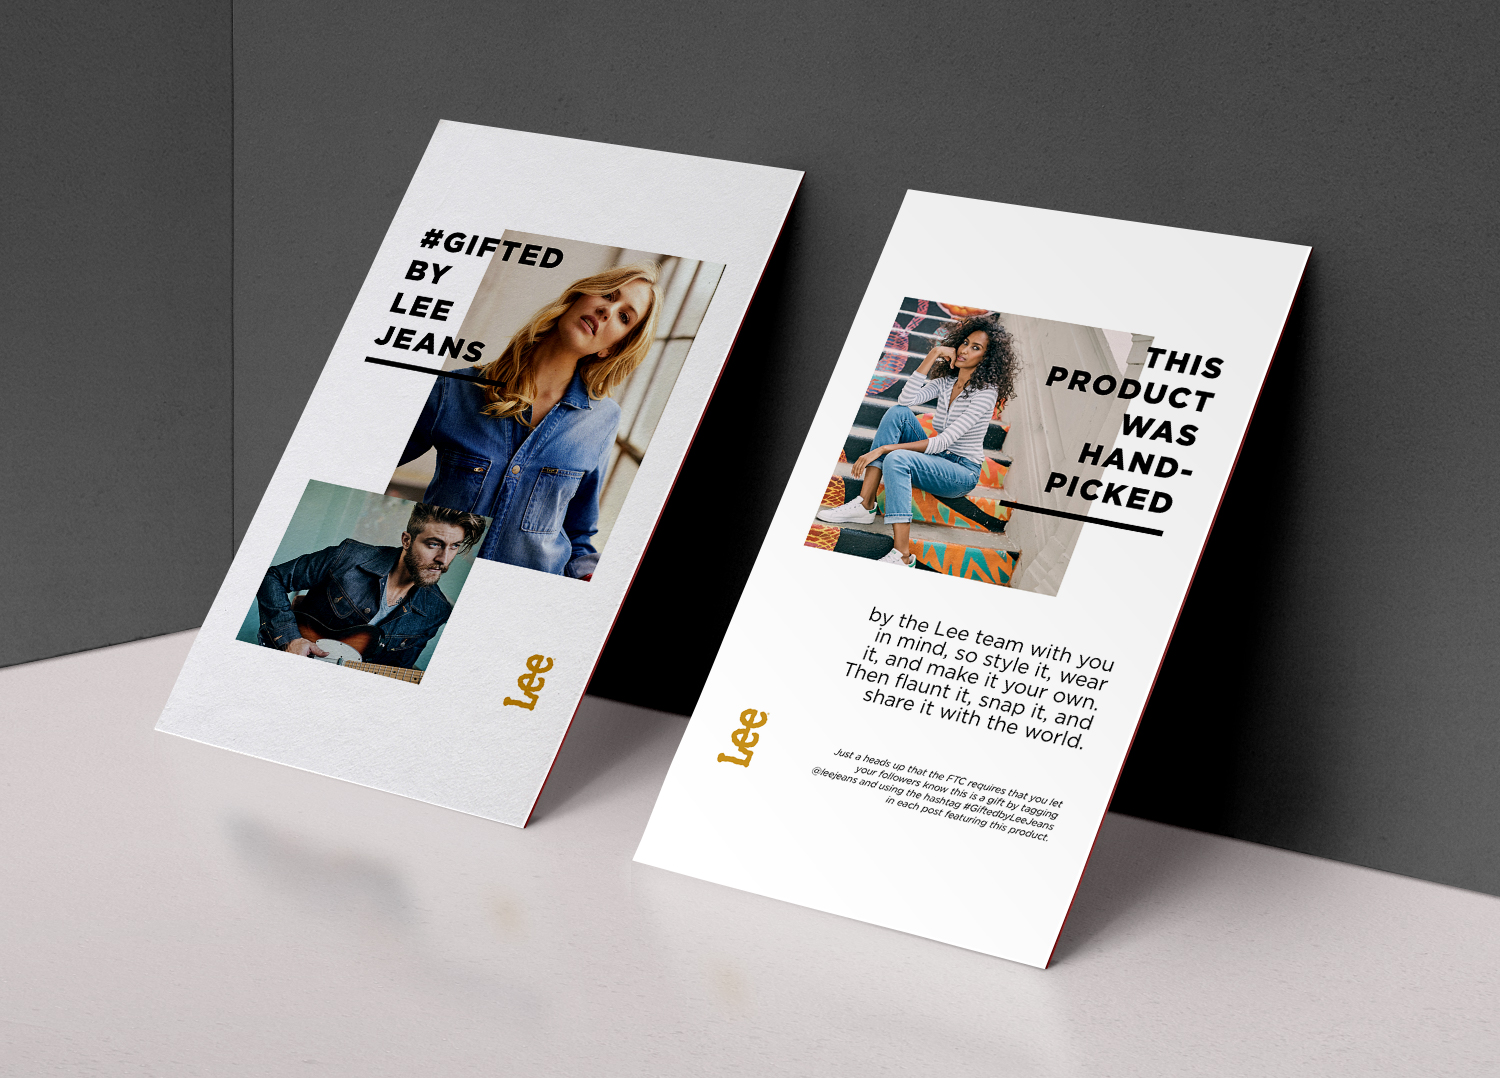 Influencers - We also redesigned the cards that accompany the products we send to influencers.